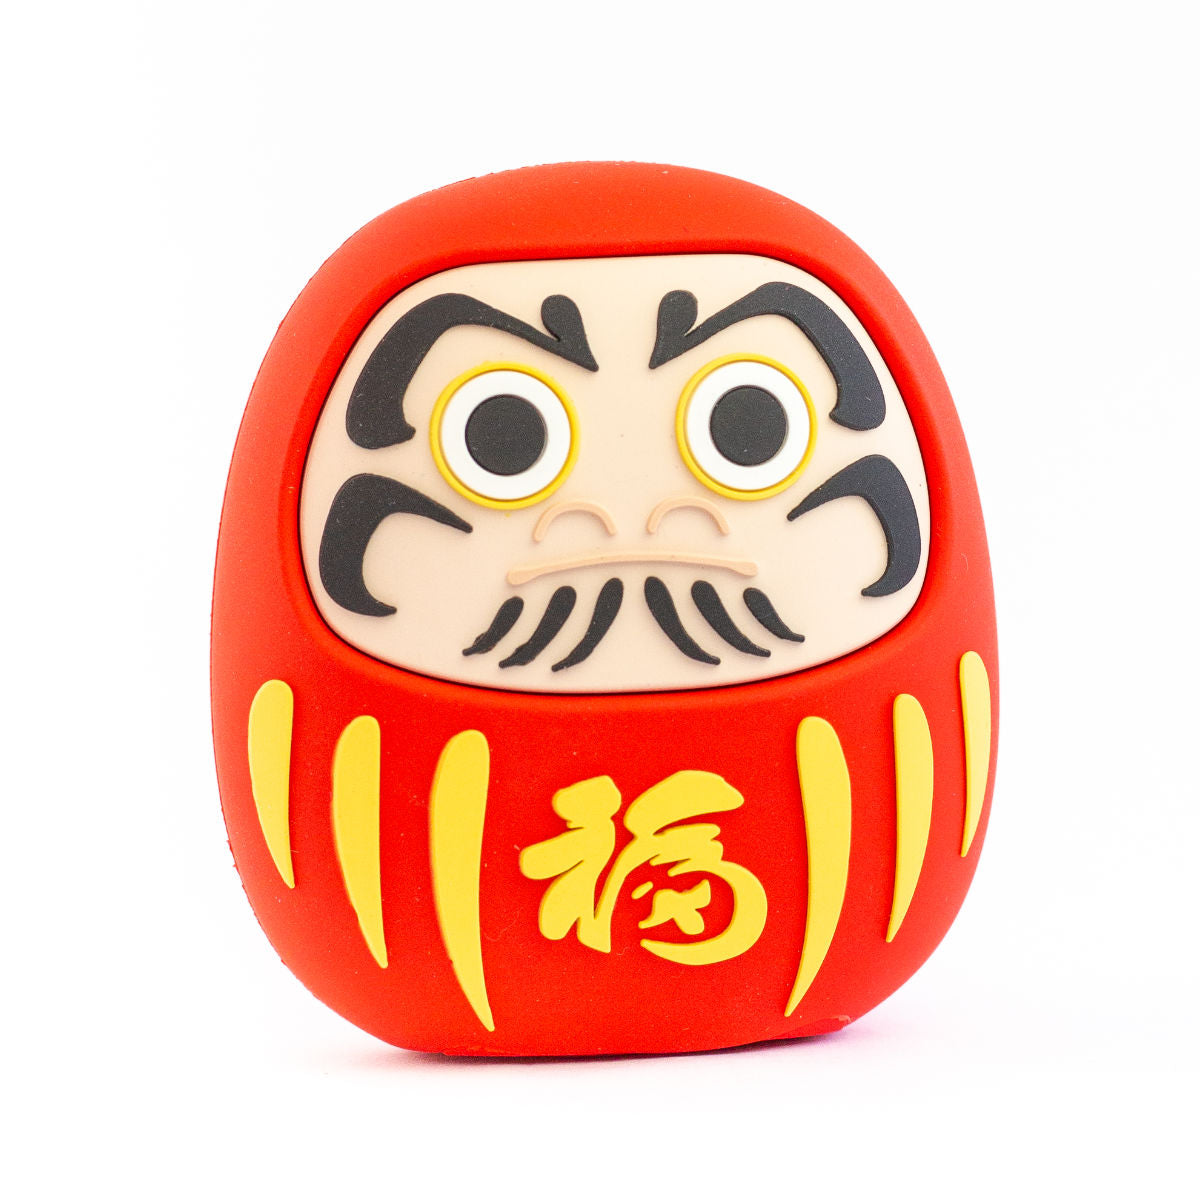 Moji Emoji power bank 2600mAh, daruma